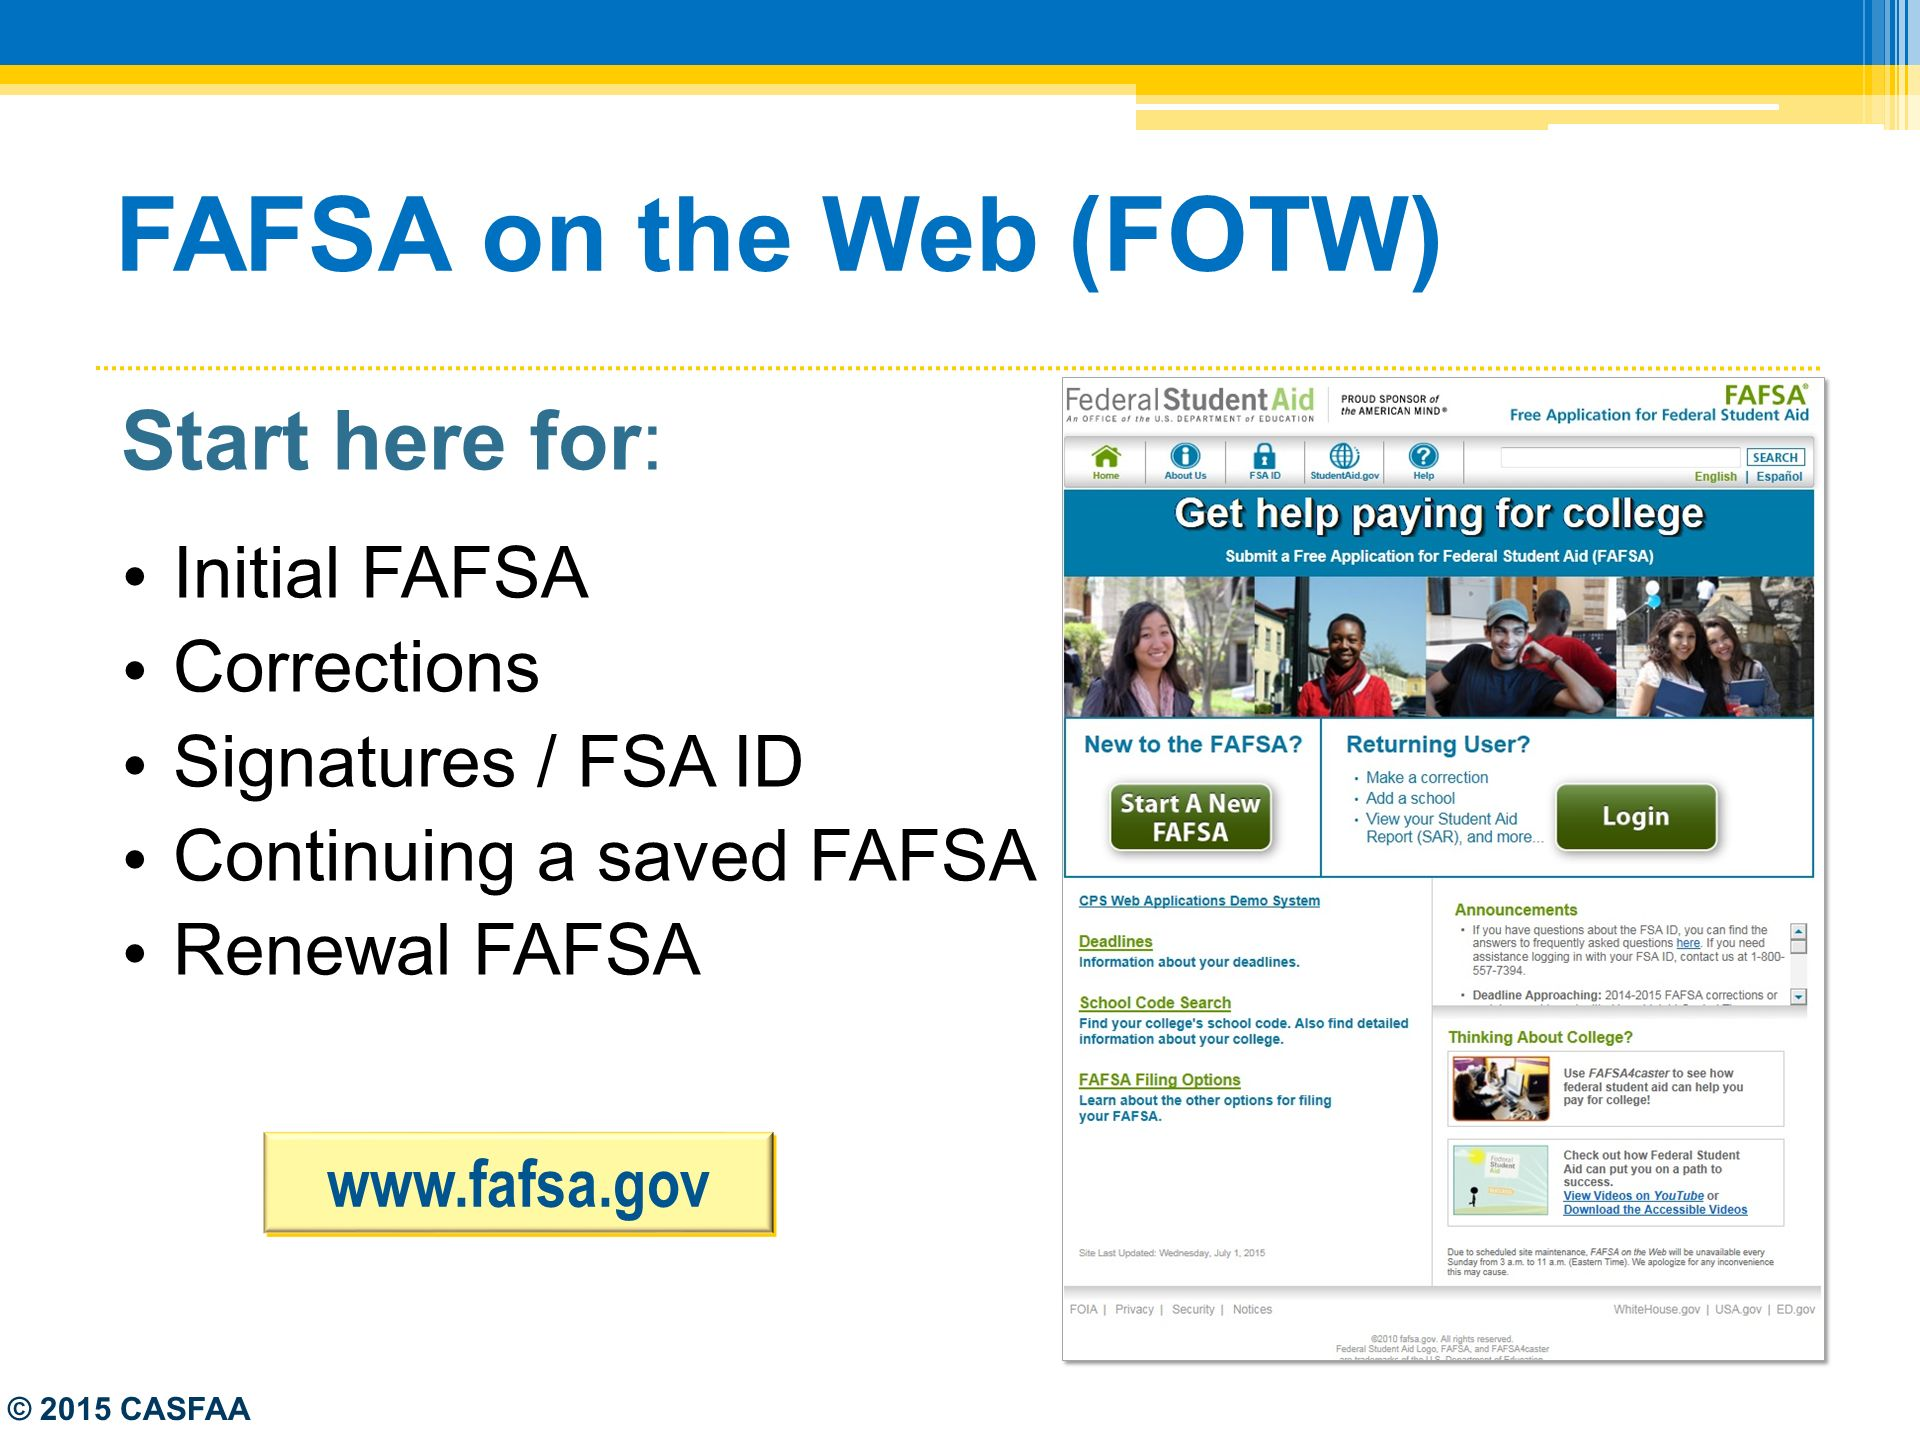 Worksheets Fafsa On The Web Worksheet federal updates the fafsa ppt download 7 fafsa